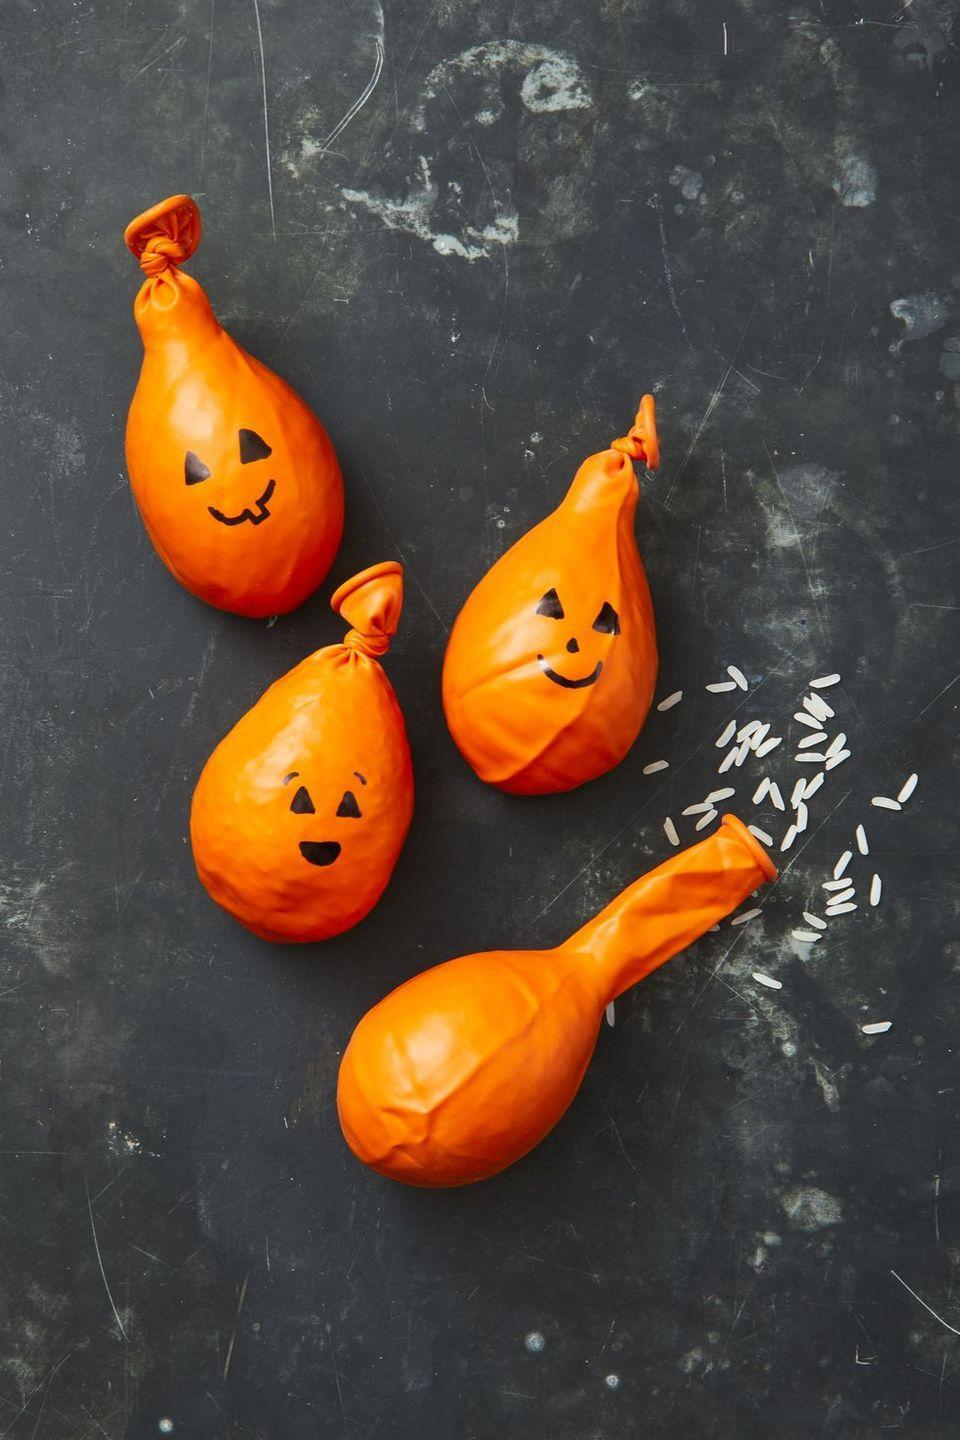 "<p><span>Don't worry: These rice-filled DIY pumpkin stress balls are super easy to make. Just fill up orange balloons with rice and draw on a cute (or creepy) face.</span> </p><p><a class=""link rapid-noclick-resp"" href=""https://www.amazon.com/Prextex-Balloons-Matching-Decoration-Weddings/dp/B07V9ZXF2X/?tag=syn-yahoo-20&ascsubtag=%5Bartid%7C10055.g.22062770%5Bsrc%7Cyahoo-us"" rel=""nofollow noopener"" target=""_blank"" data-ylk=""slk:SHOP ORANGE BALLOONS"">SHOP ORANGE BALLOONS</a></p>"